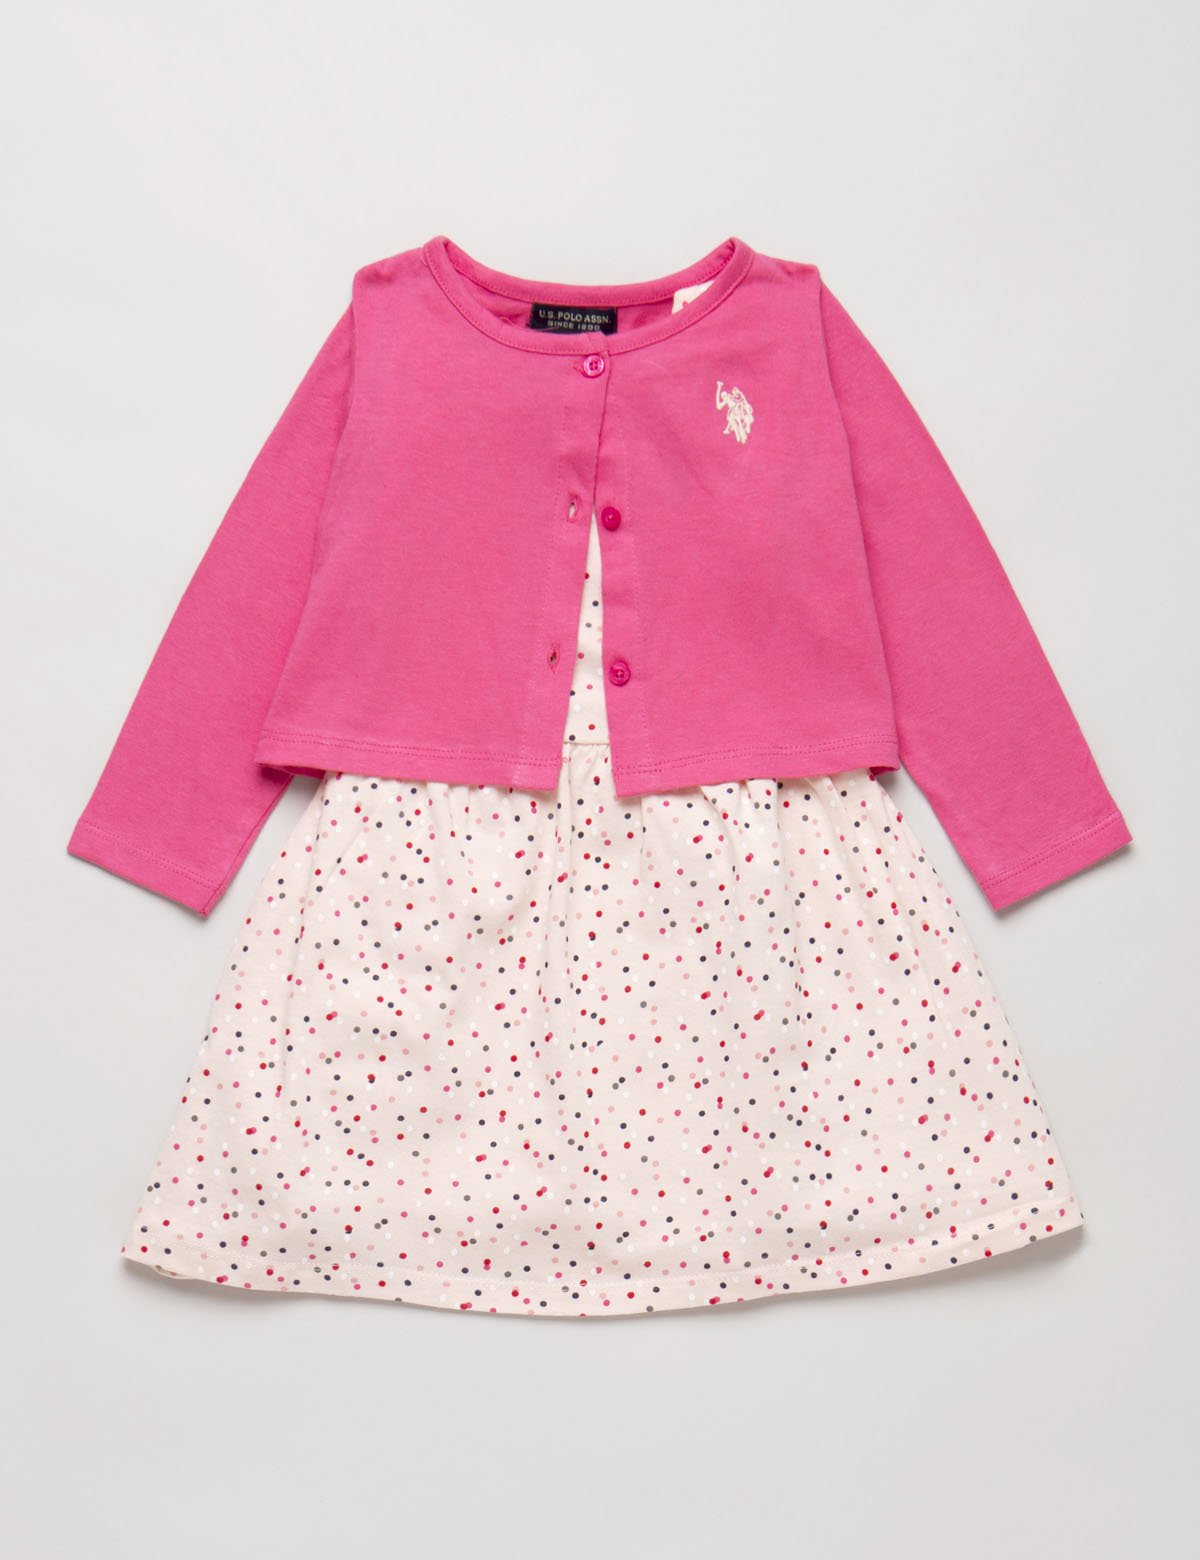 Toddler 2 Piece Set: Dress & Cardigan